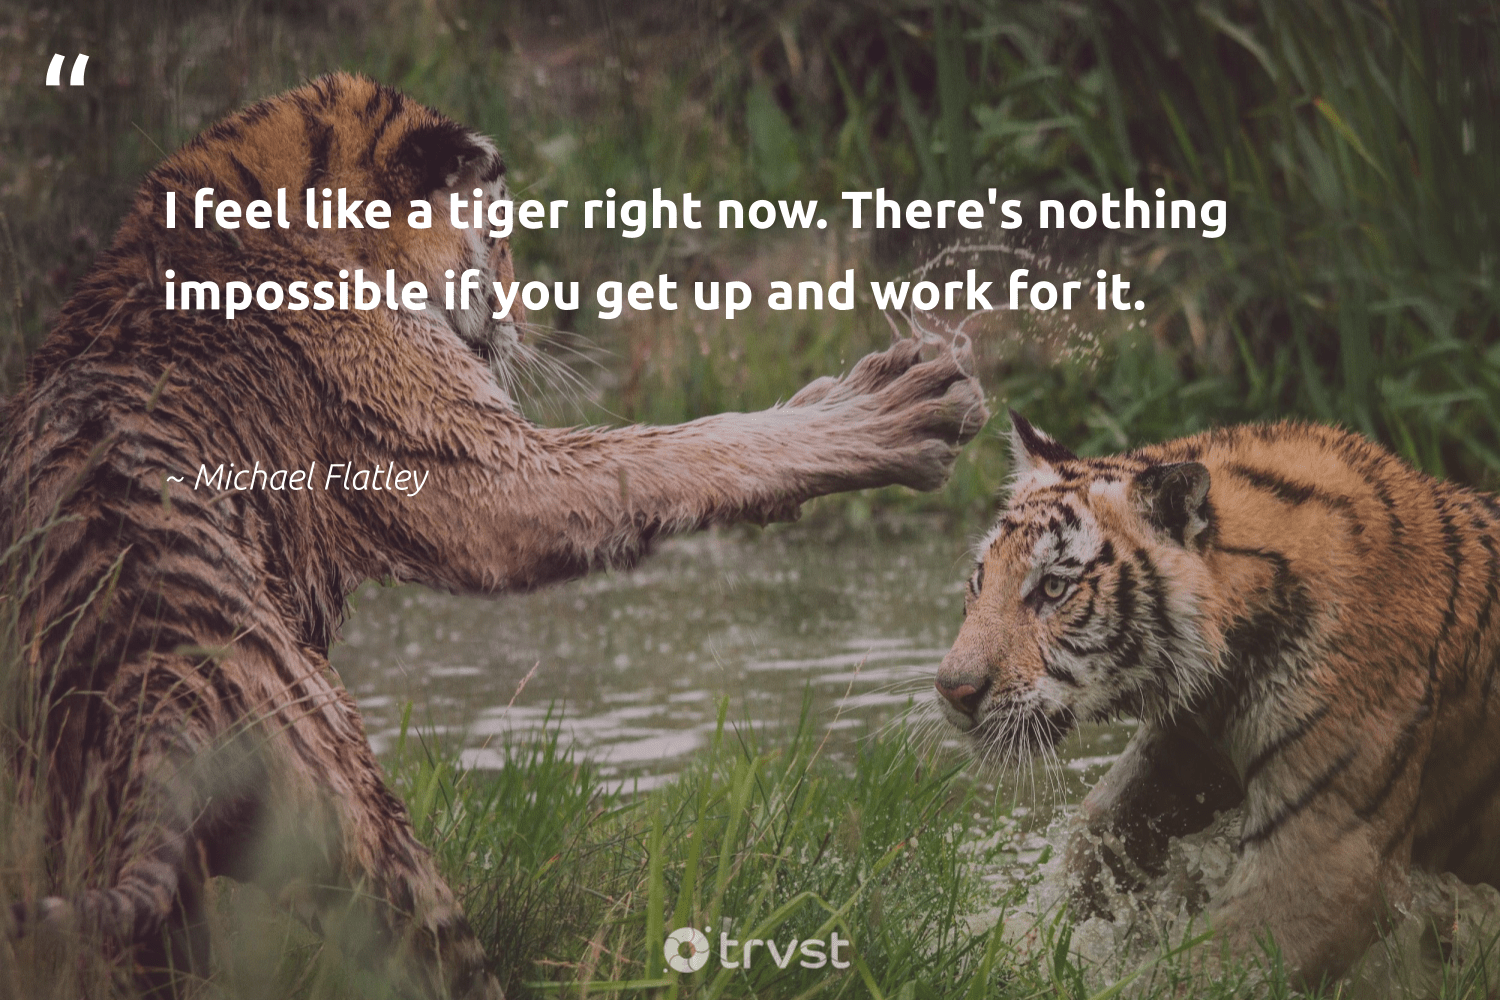 """I feel like a tiger right now. There's nothing impossible if you get up and work for it.""  - Michael Flatley #trvst #quotes #tiger #tigers #dogood #ourplanetdaily #ecoconscious #conservation #gogreen #wildlifeprotection #beinspired #wild"